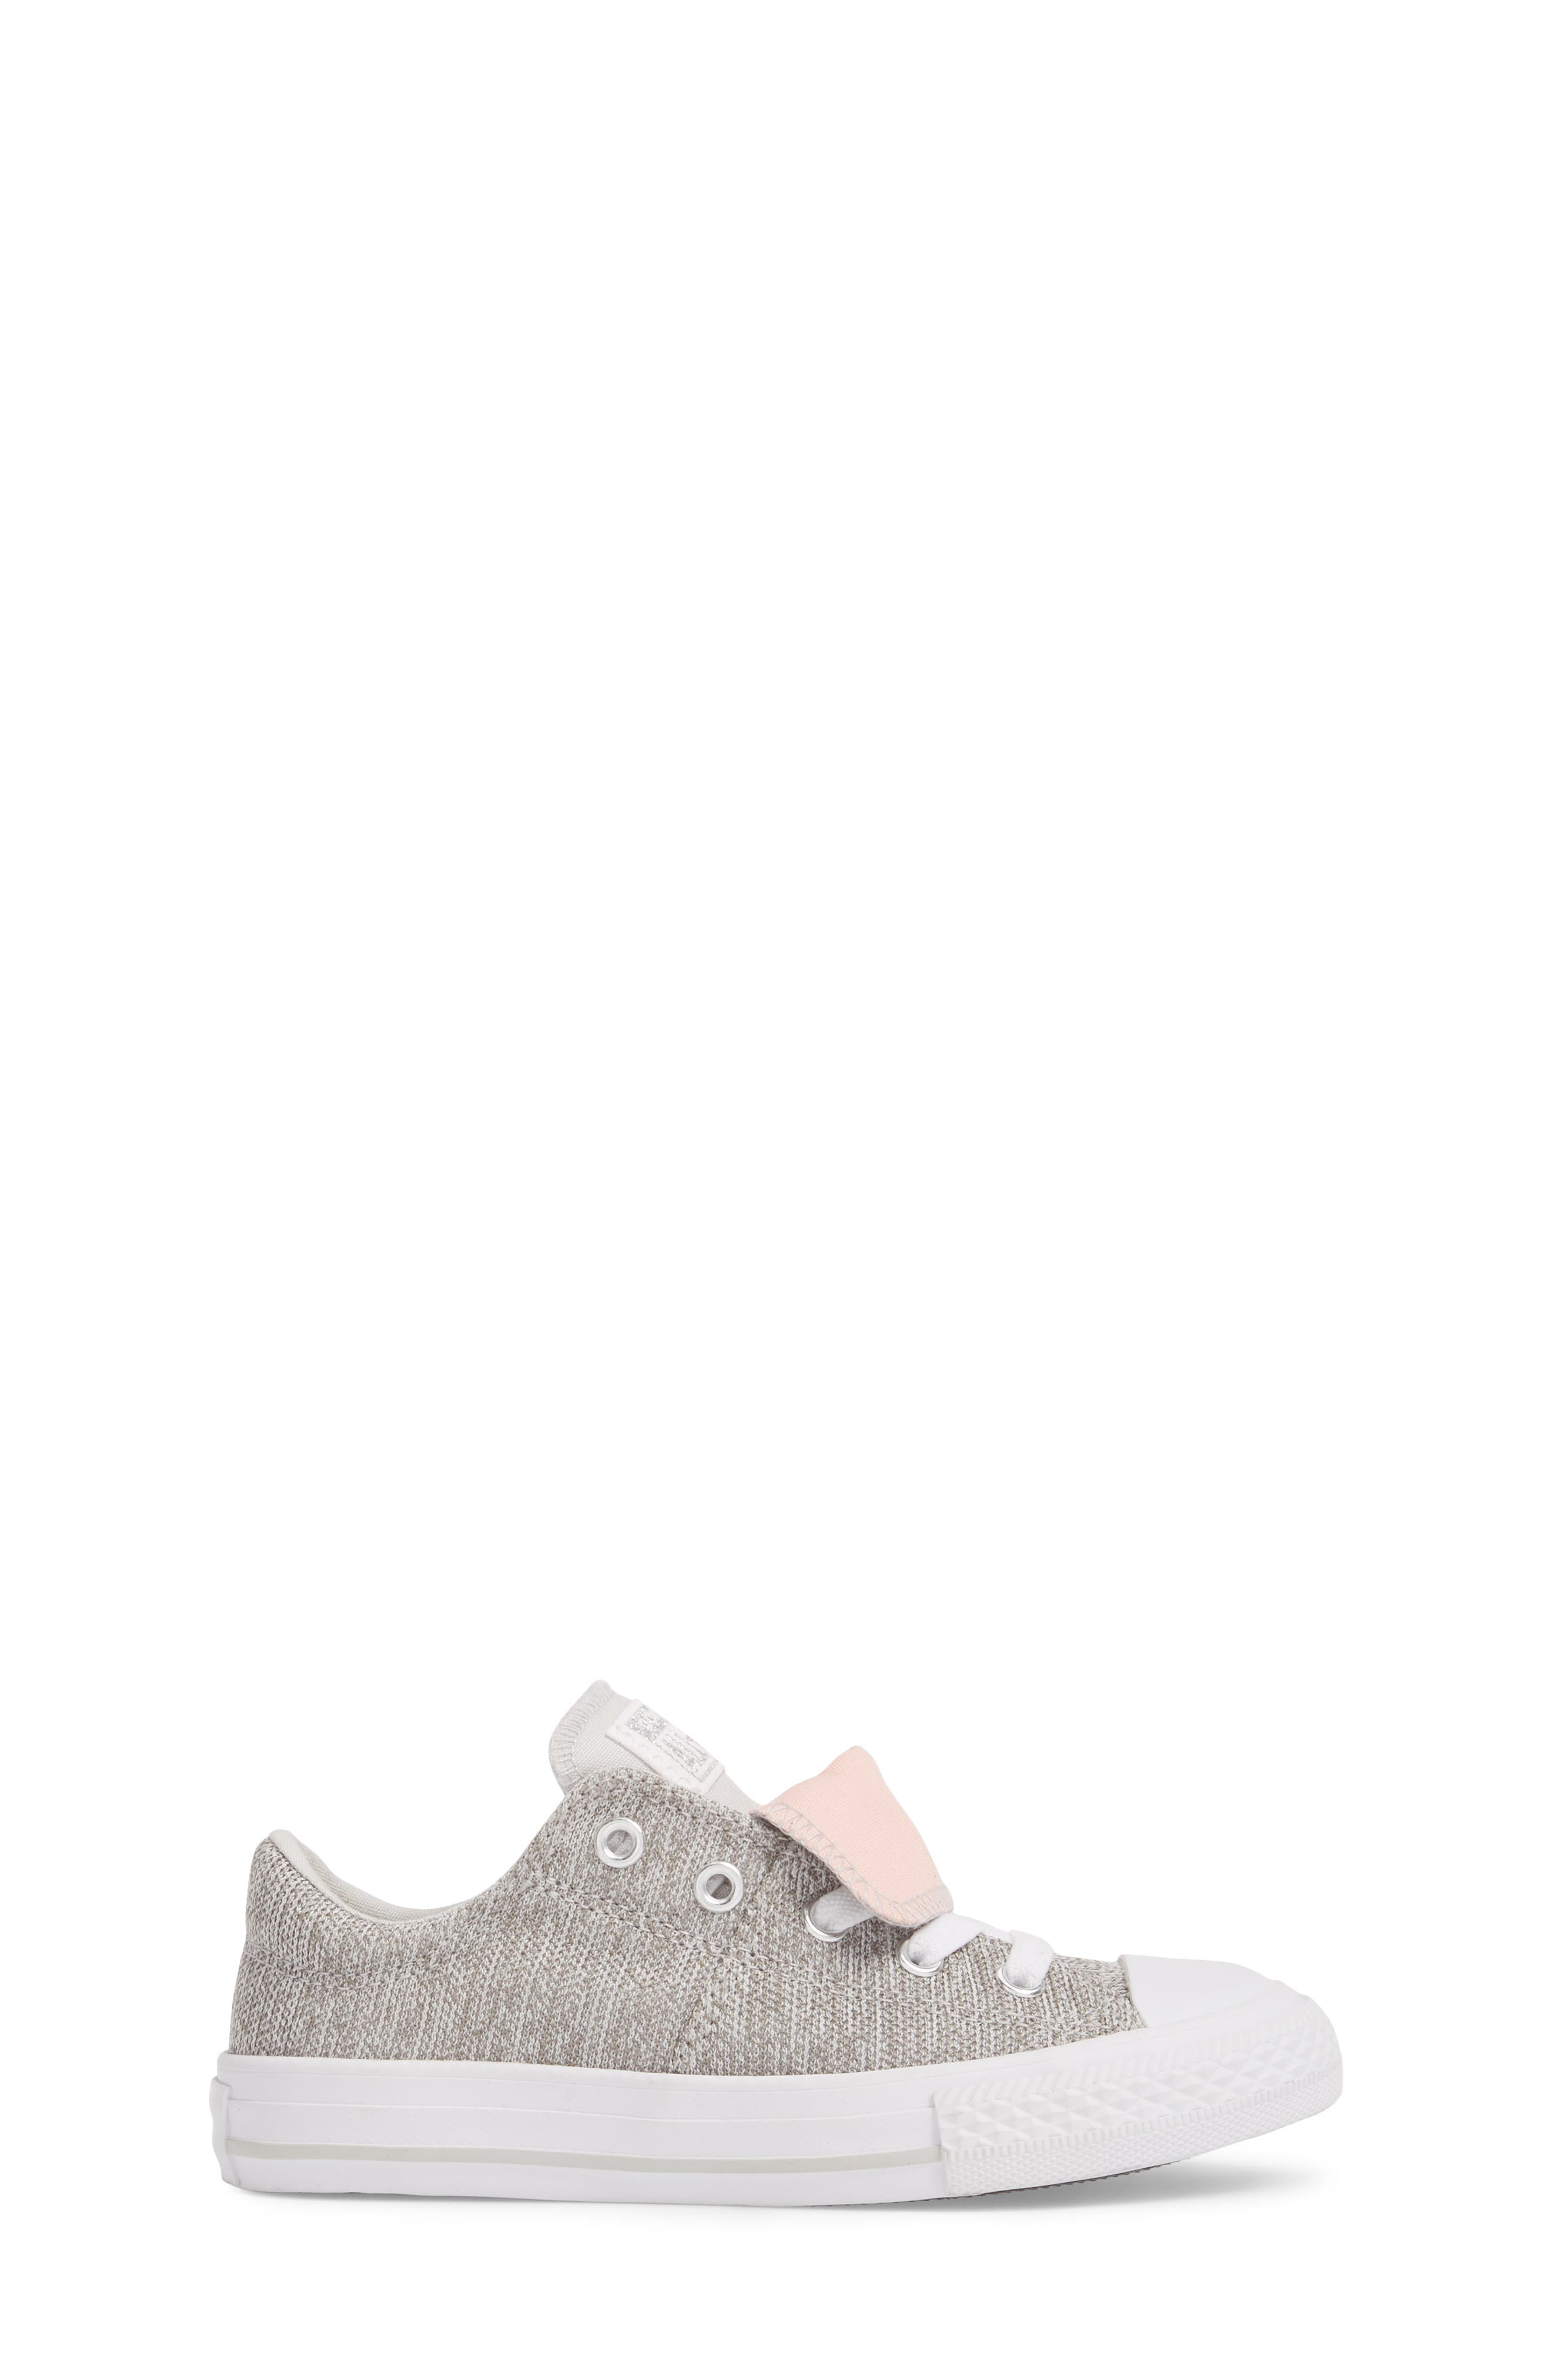 Chuck Taylor<sup>®</sup> All Star<sup>®</sup> Maddie Double Tongue Sneaker,                             Alternate thumbnail 3, color,                             LIGHT GREY